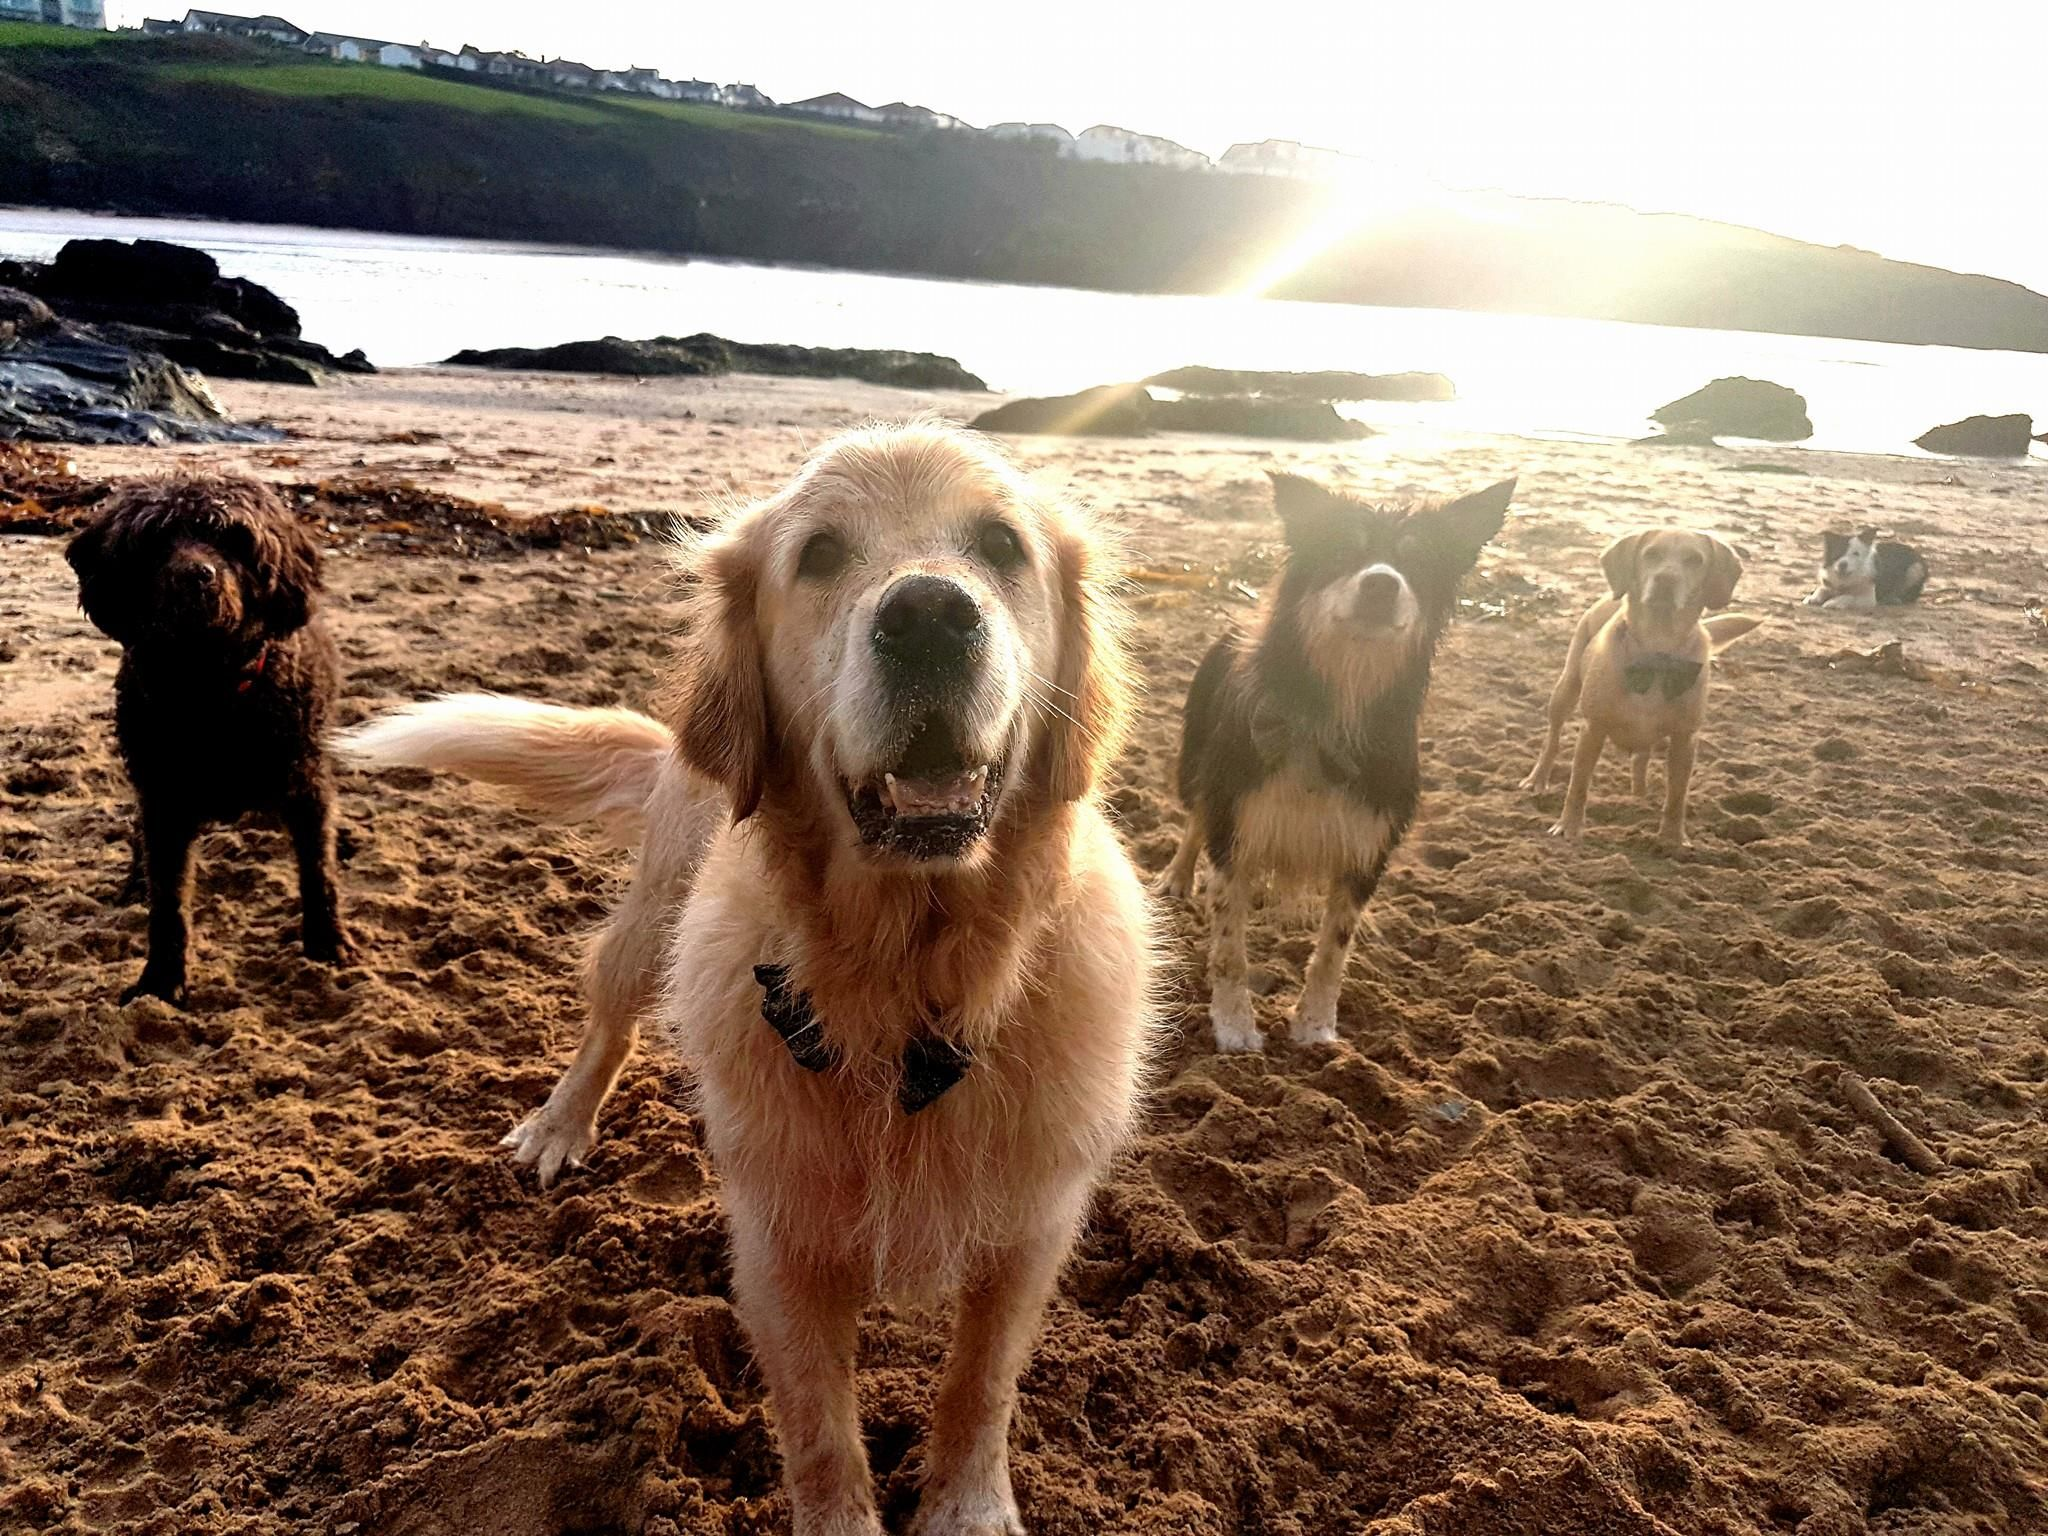 Dogs At The Beach Old Lanwarnick Luxury Cottages In Cornwall Dog Beach Dog Friendly Holidays Luxury Dog